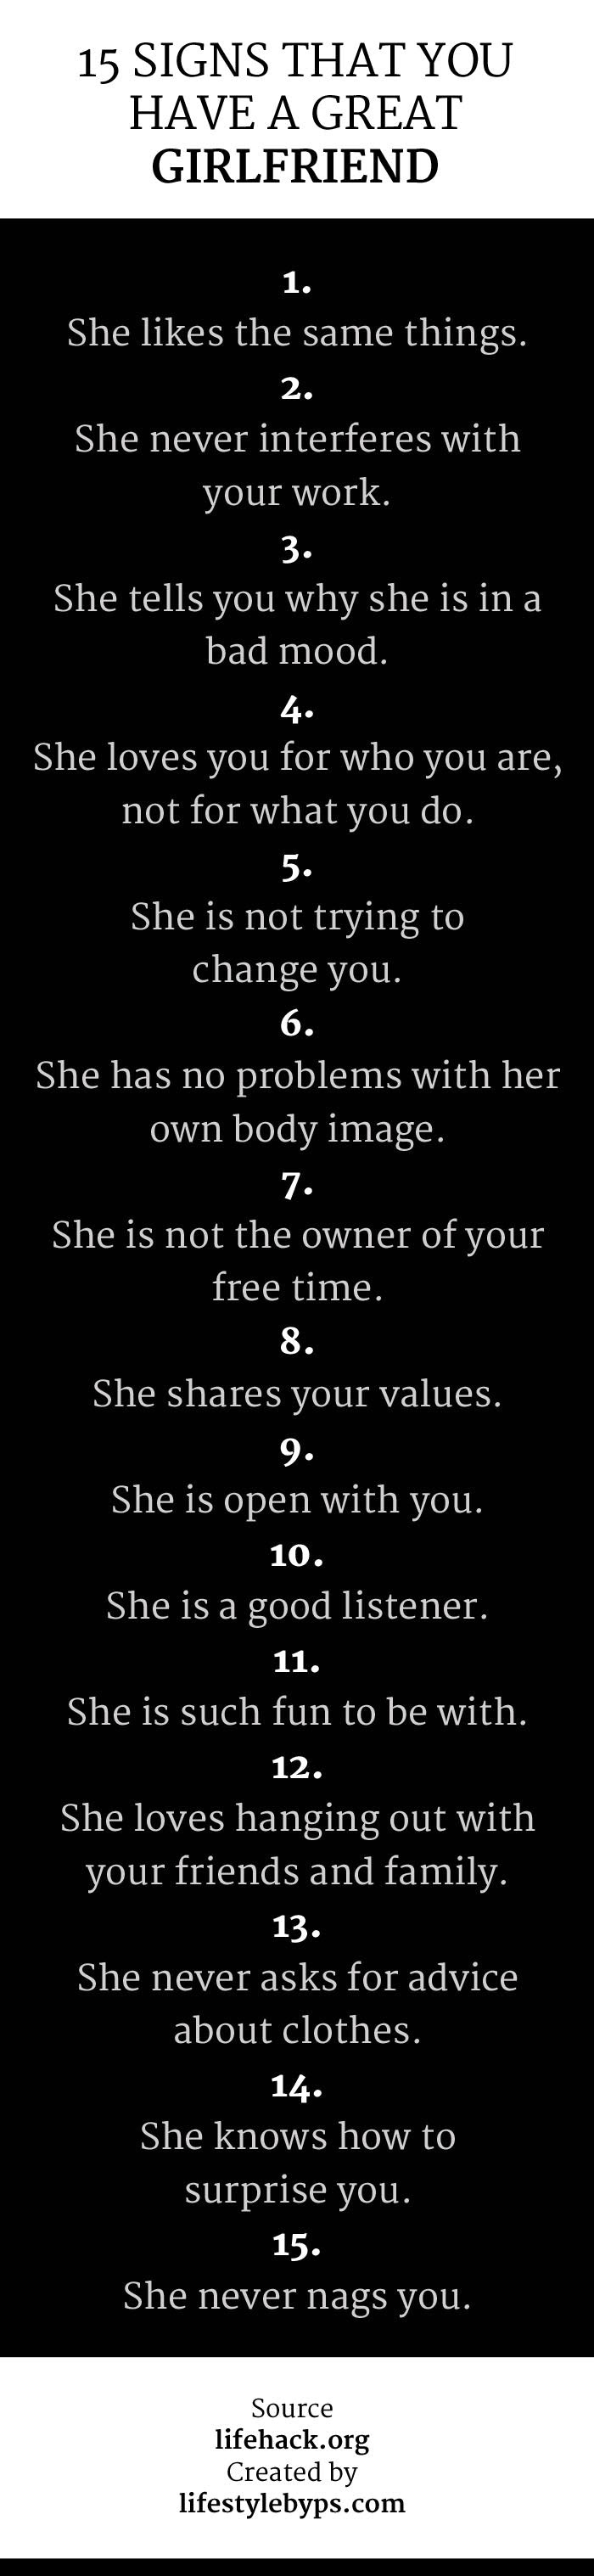 15 Signs That You Have A Great Girlfriend